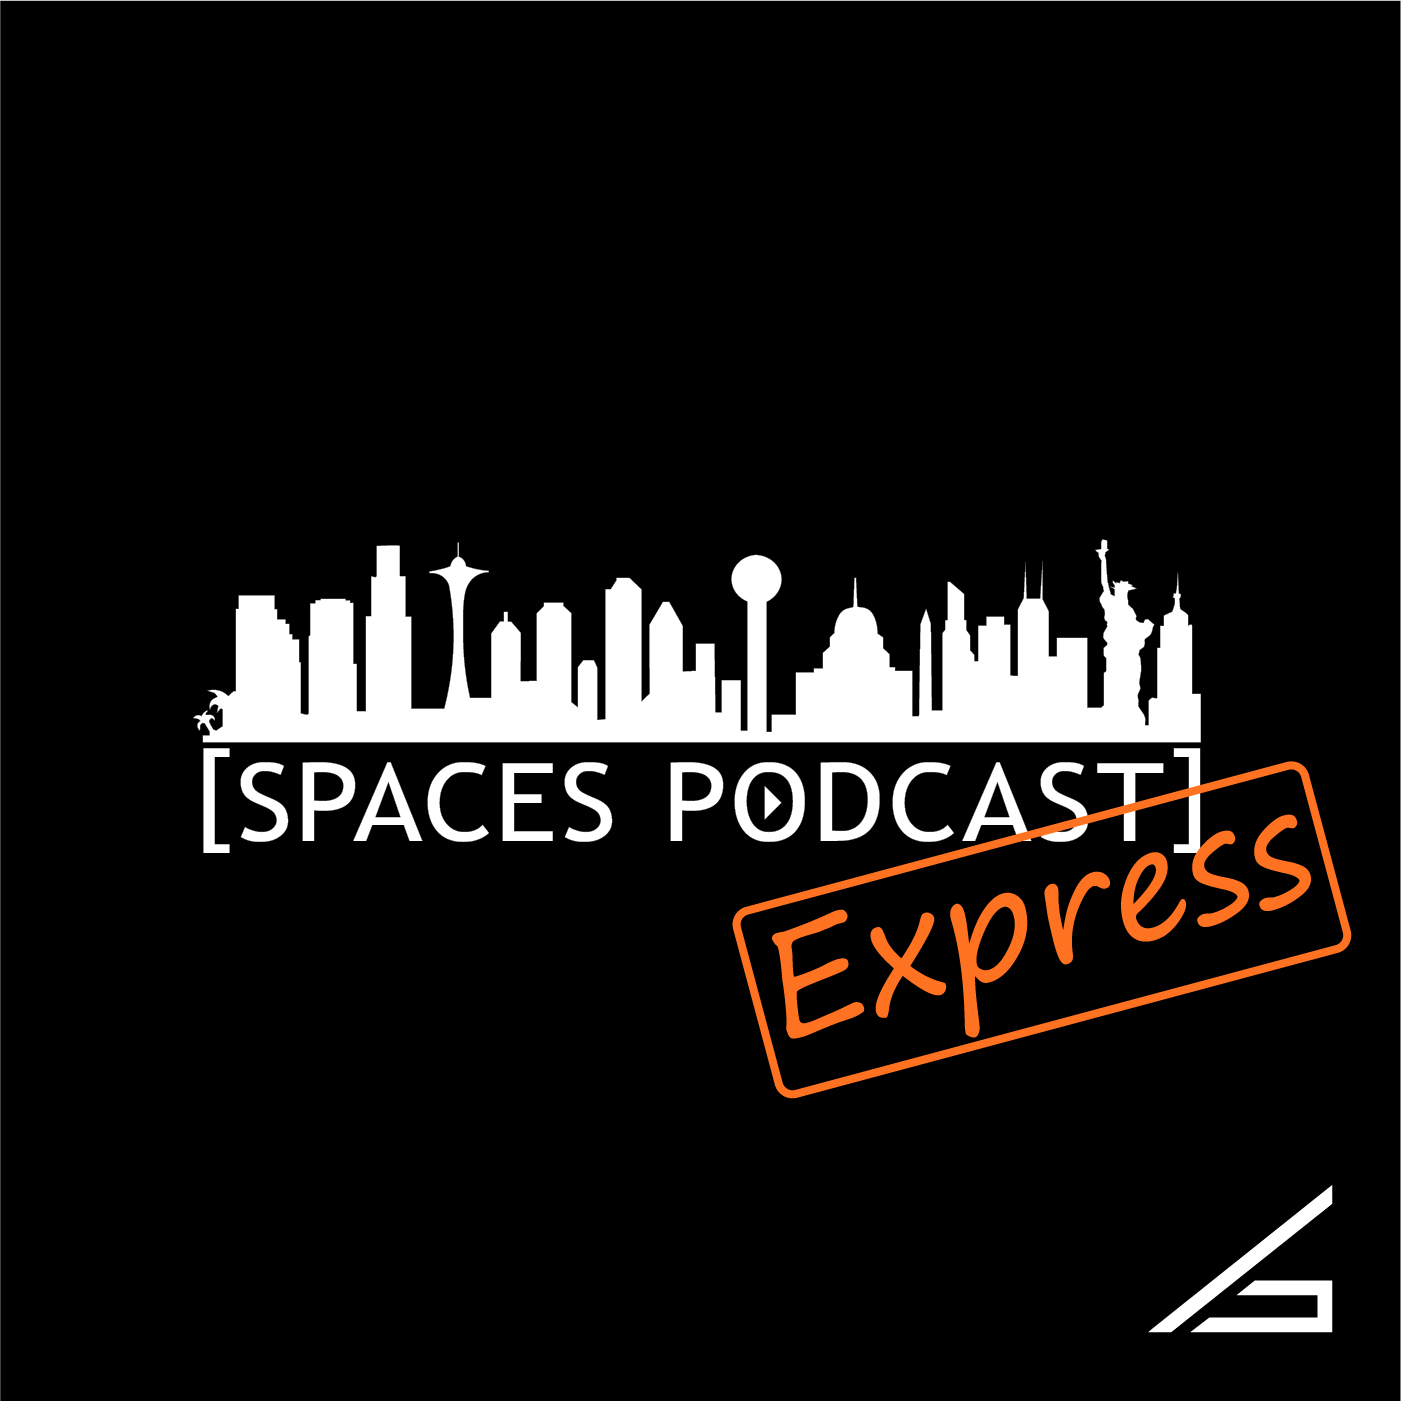 Artwork for podcast Spaces Podcast